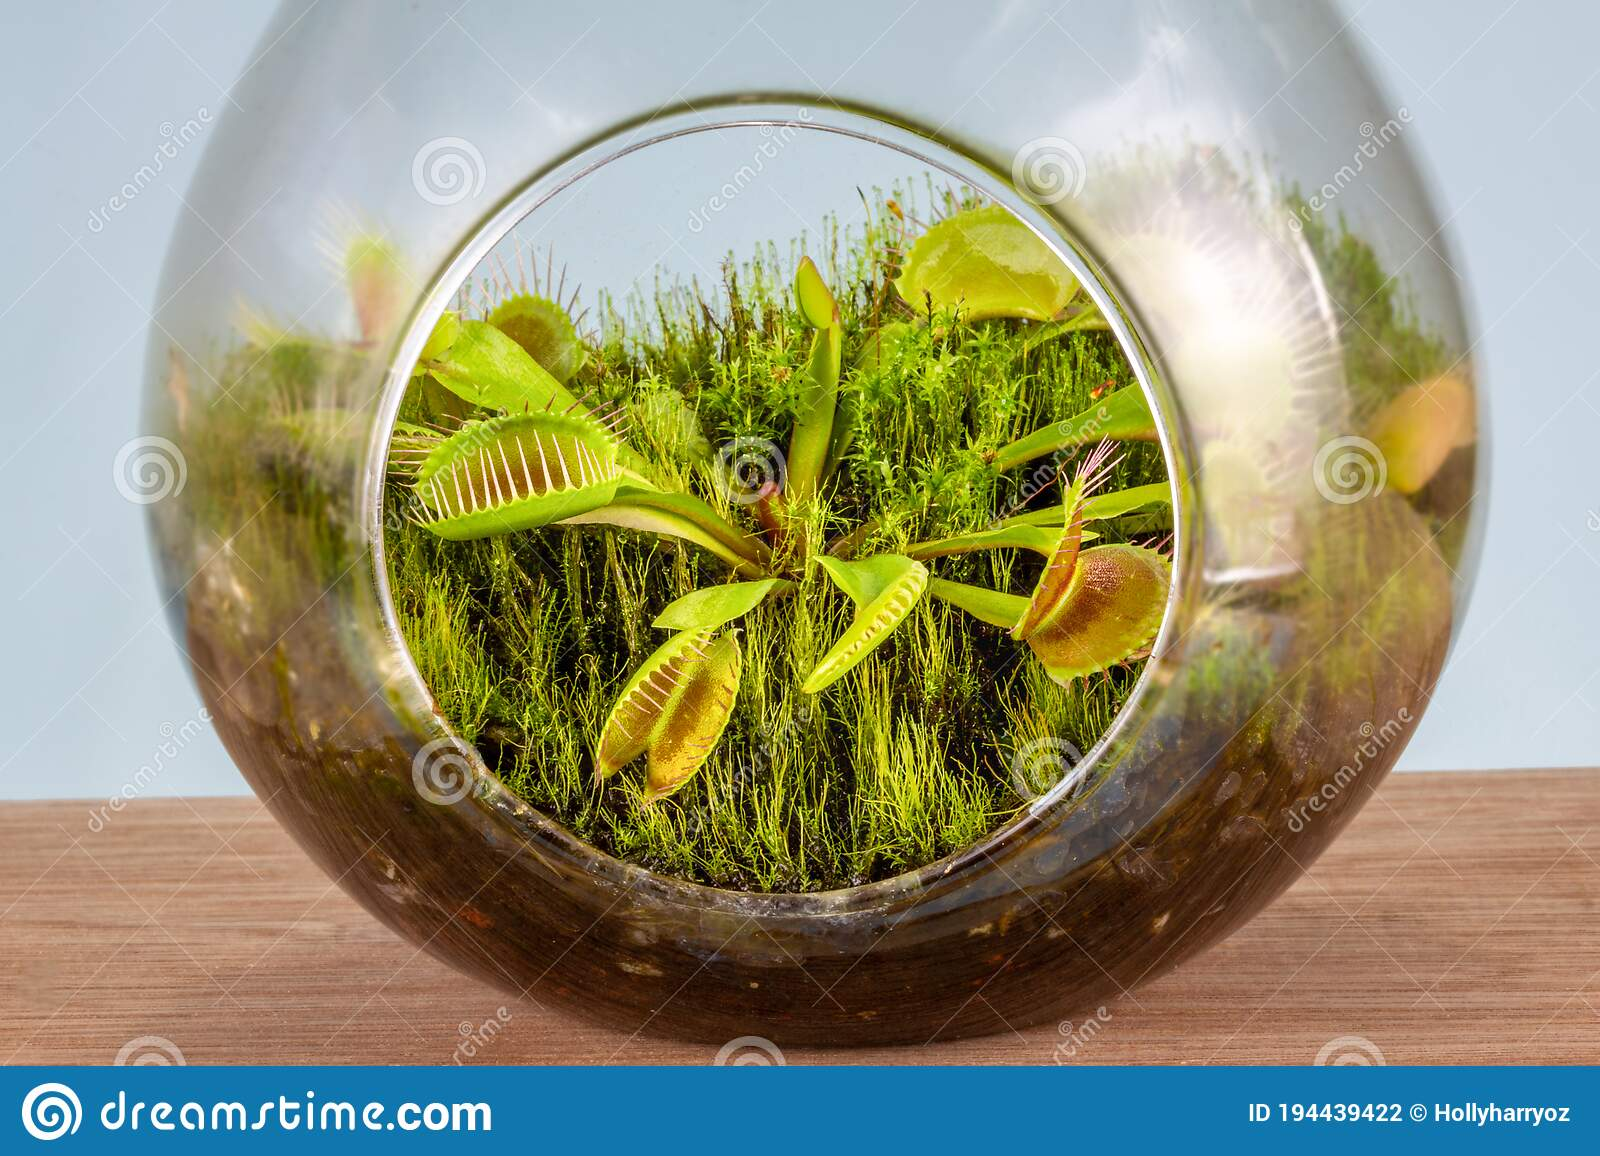 Close Up Of Venus Flytrap Dionaea Muscipula Growing In Glass Terrarium Stock Photo Image Of Carnivorous Flytrap 194439422